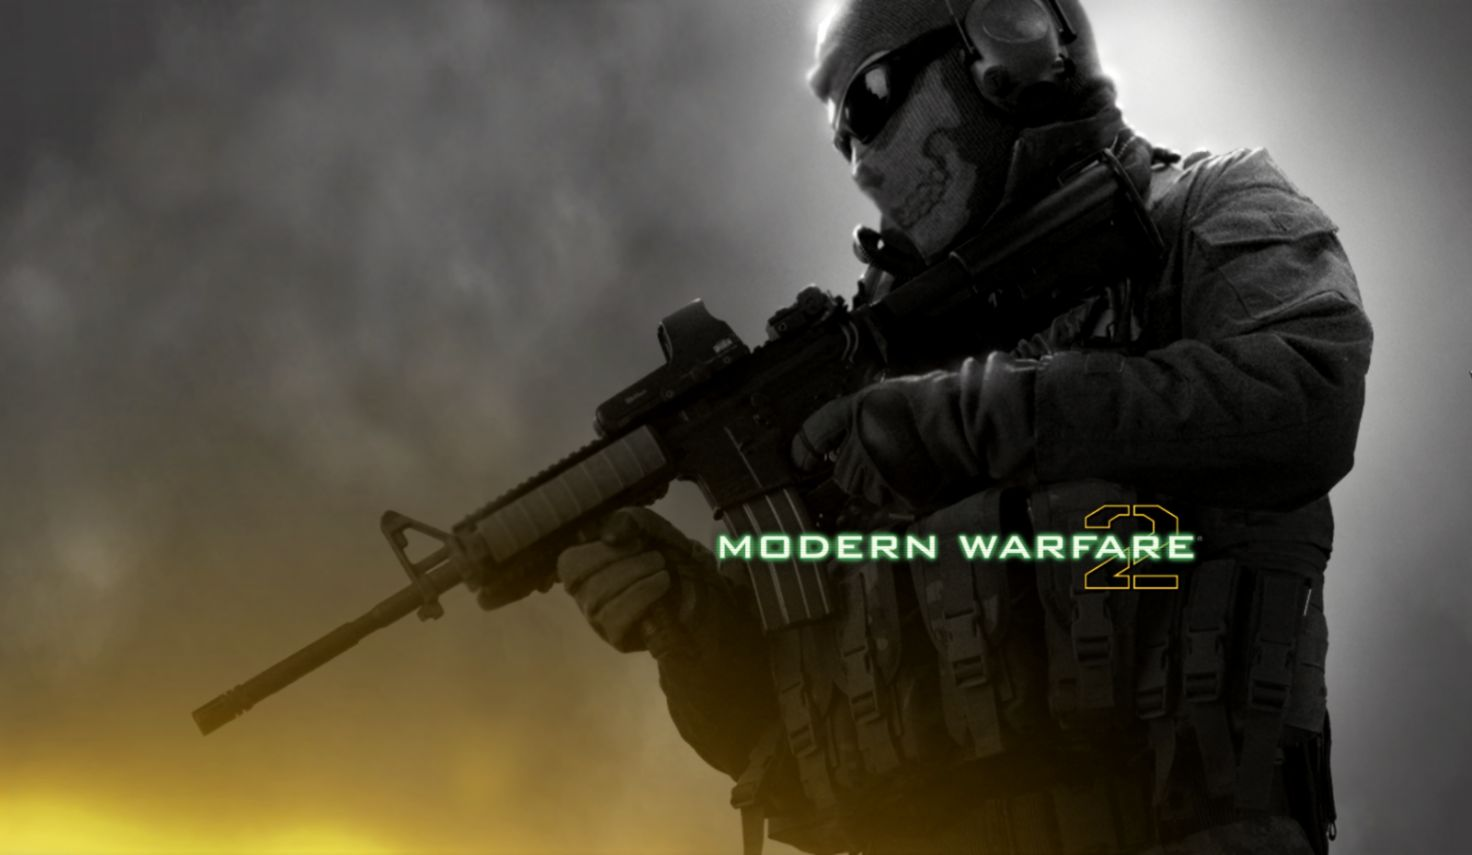 call of duty modern warfare wallpaper ps4